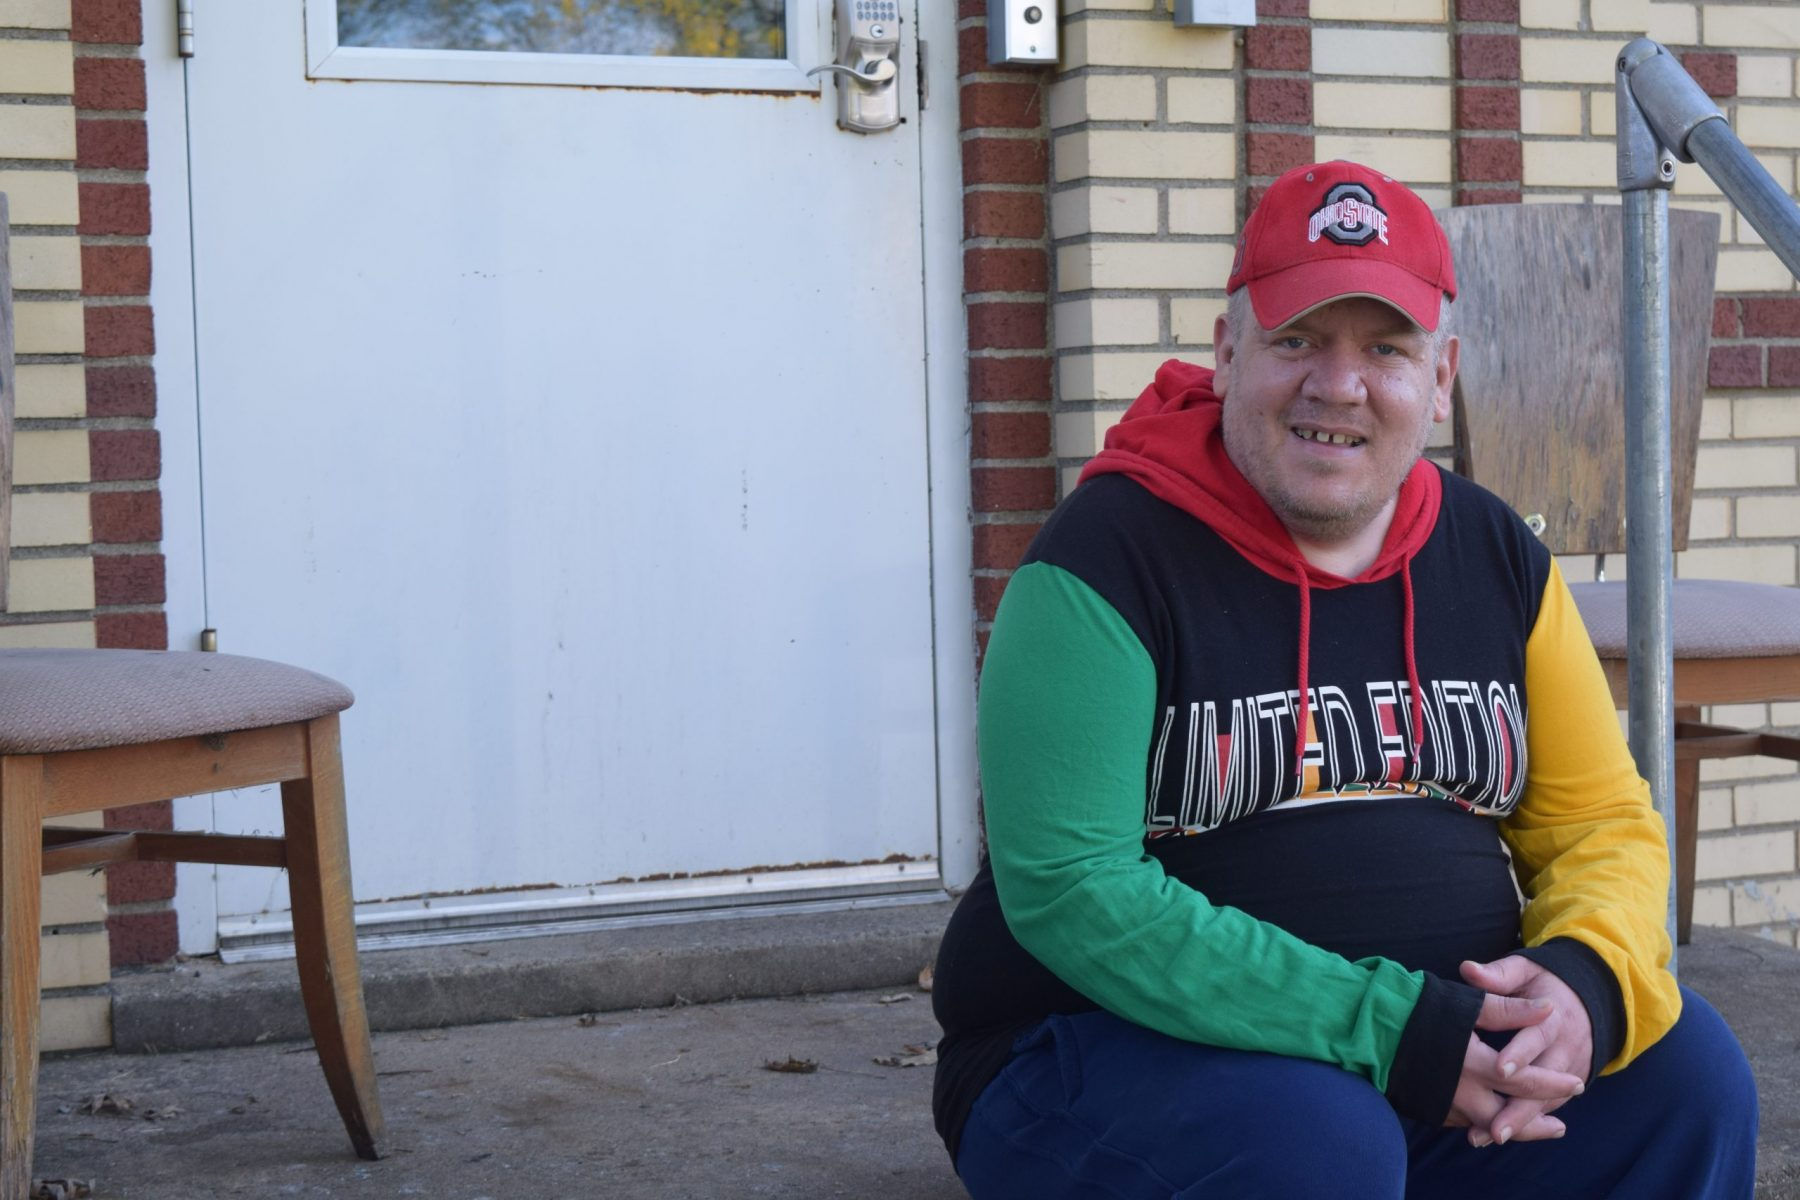 a man smiles while sitting on the front step of an apartment building